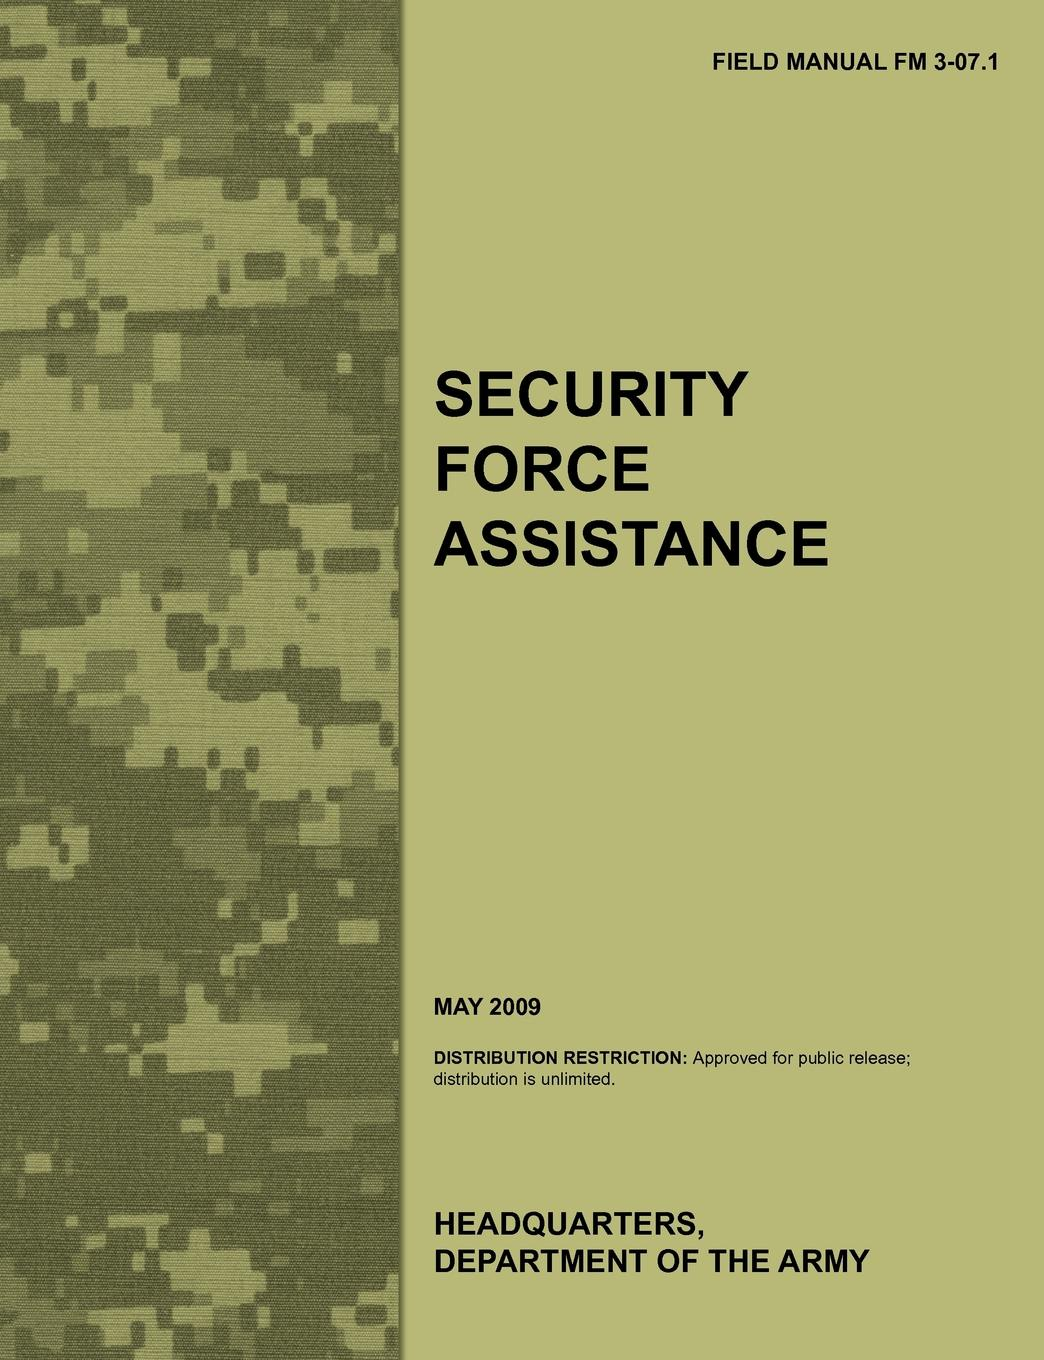 Army Training Doctrine and Command, Combined Arms Doctrine Directorate, U.S. Department of the Army Security Force Assistance. The official U.S. Army Field Manual FM FM 3-07.1 (May 2009) аккумулятор security force sf 1207